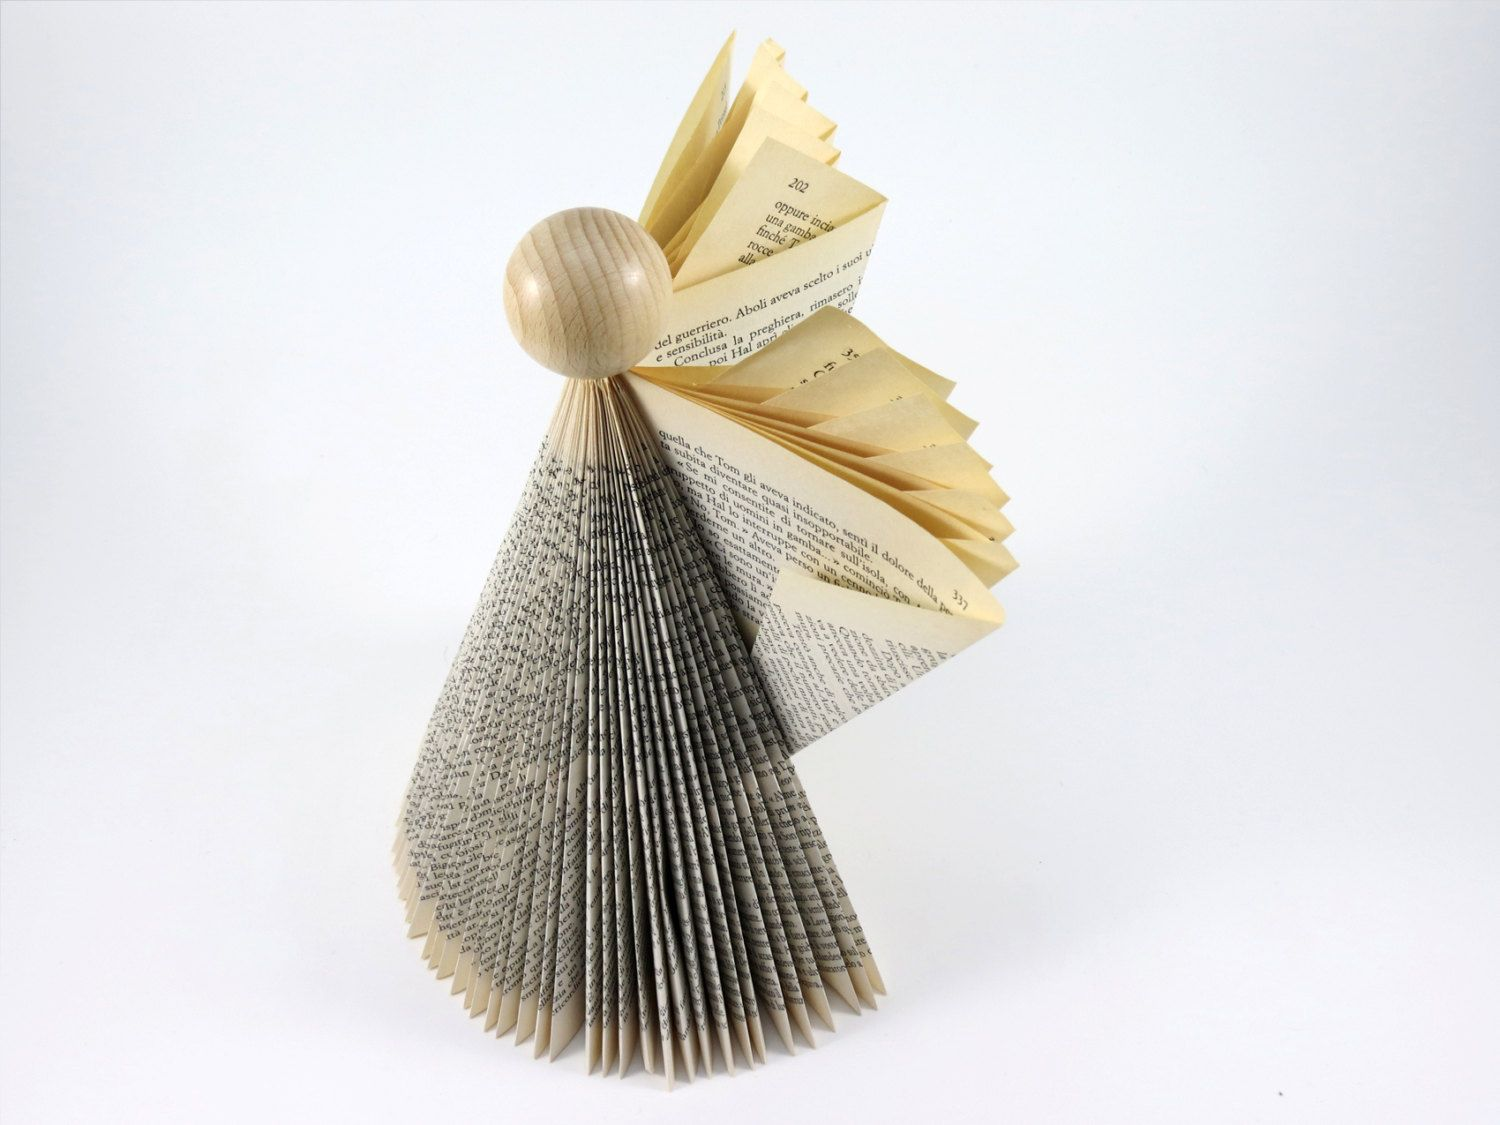 Origami Angel - Paper Art Angel - Folded Book Angel ... - photo#48